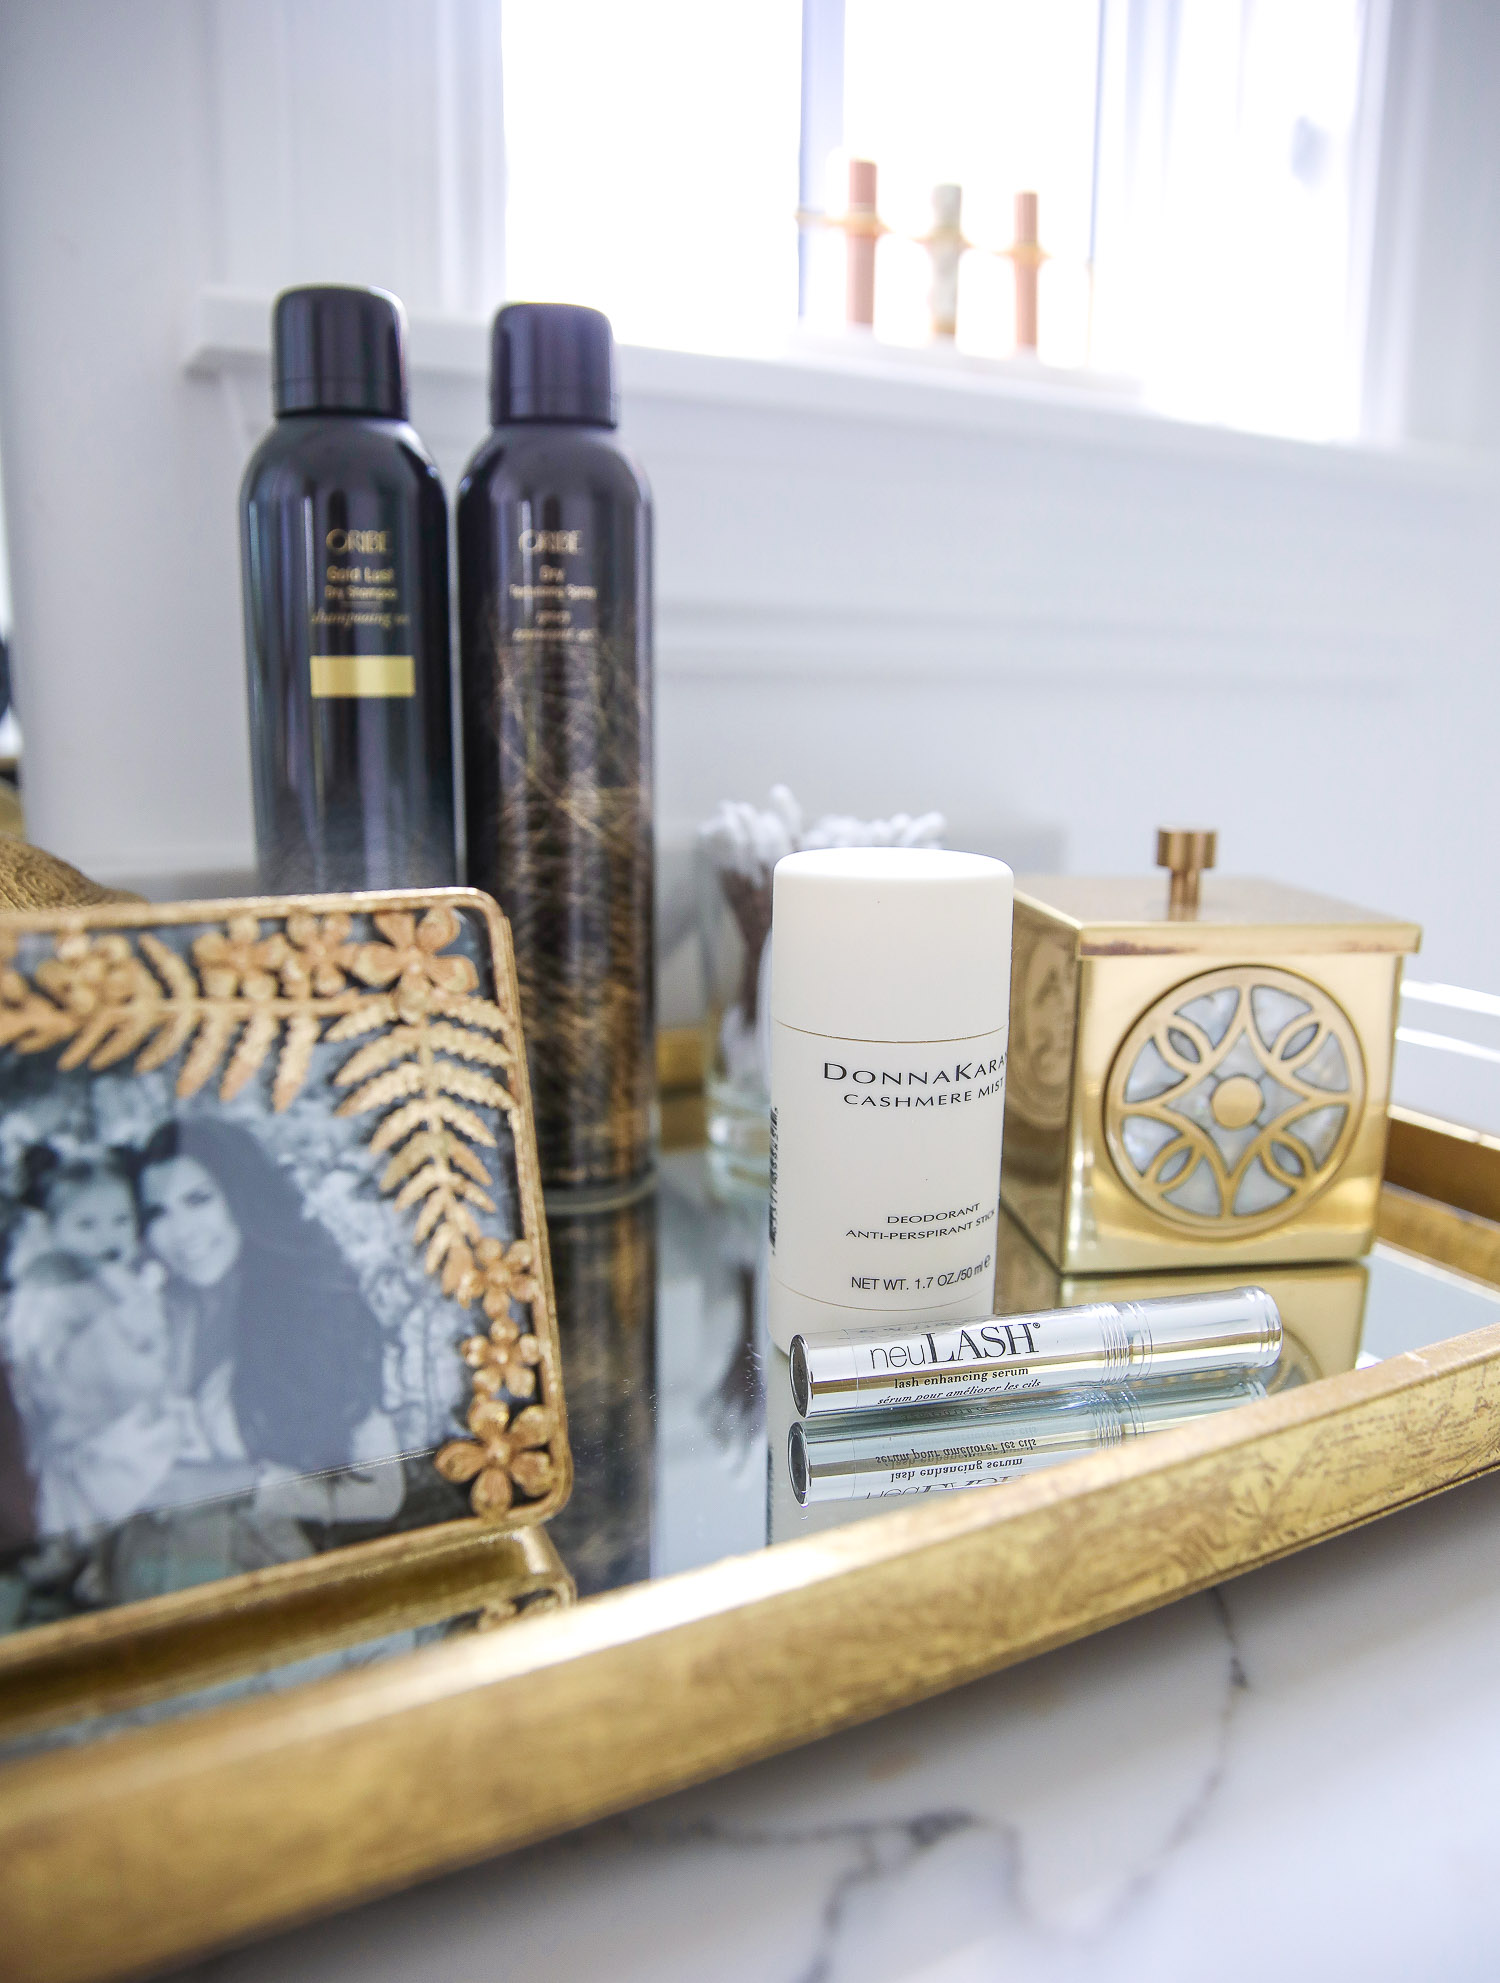 Emily gemma master bathroom, Nordstrom anniversary sale 2021 beauty must haves, anthropologie bathrom decor 2021, pinterest bathroom all white gold | Nordstrom Anniversary Sale 2021 by popular US life and style blog, The Sweetest Thing: image of a gold metal and mirrored tray with Oribe dry texture spray bottles, Donna Karan Cashmere beauty product, neu lash mascara, and gold picture frame with a black and white family photo.